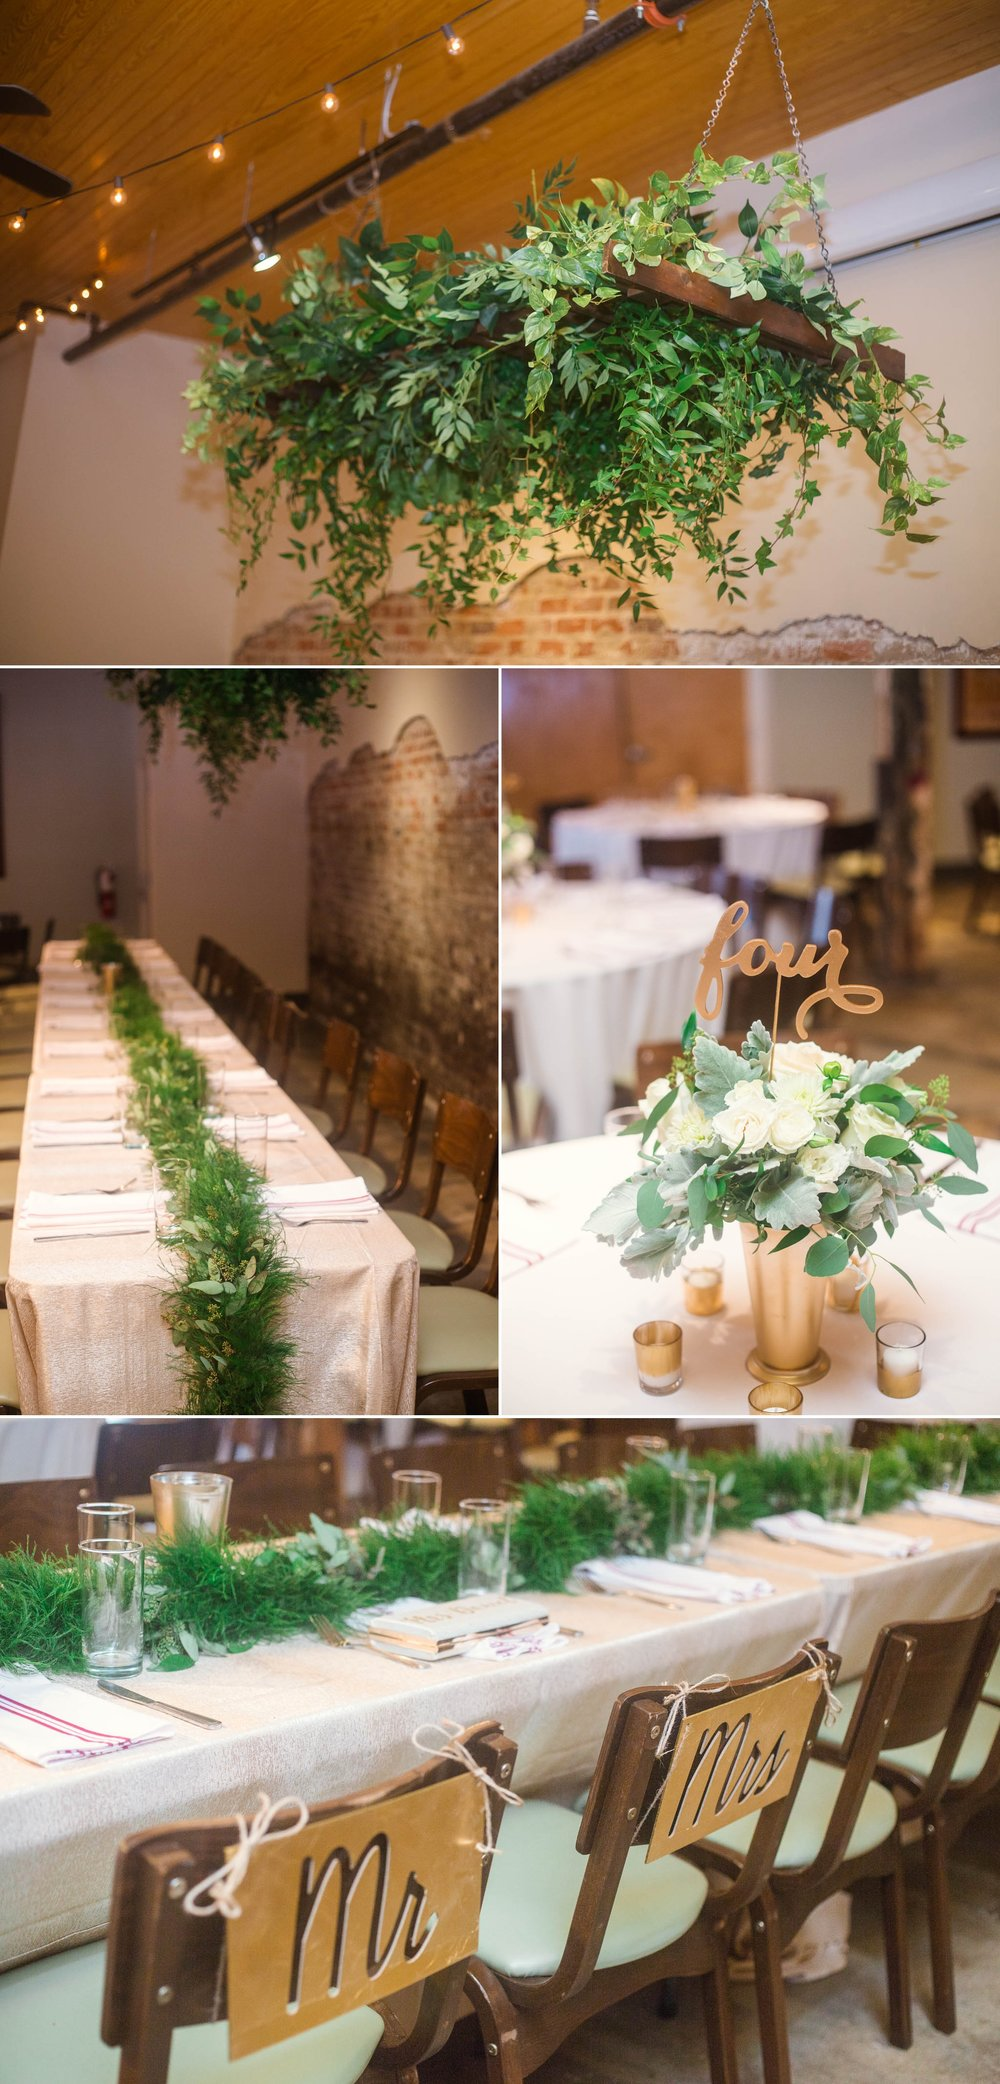 Reception Decoration by Teacup Floral - Clare + Wallace - The Jiddy Space - Raleigh North Carolina Wedding Photographer